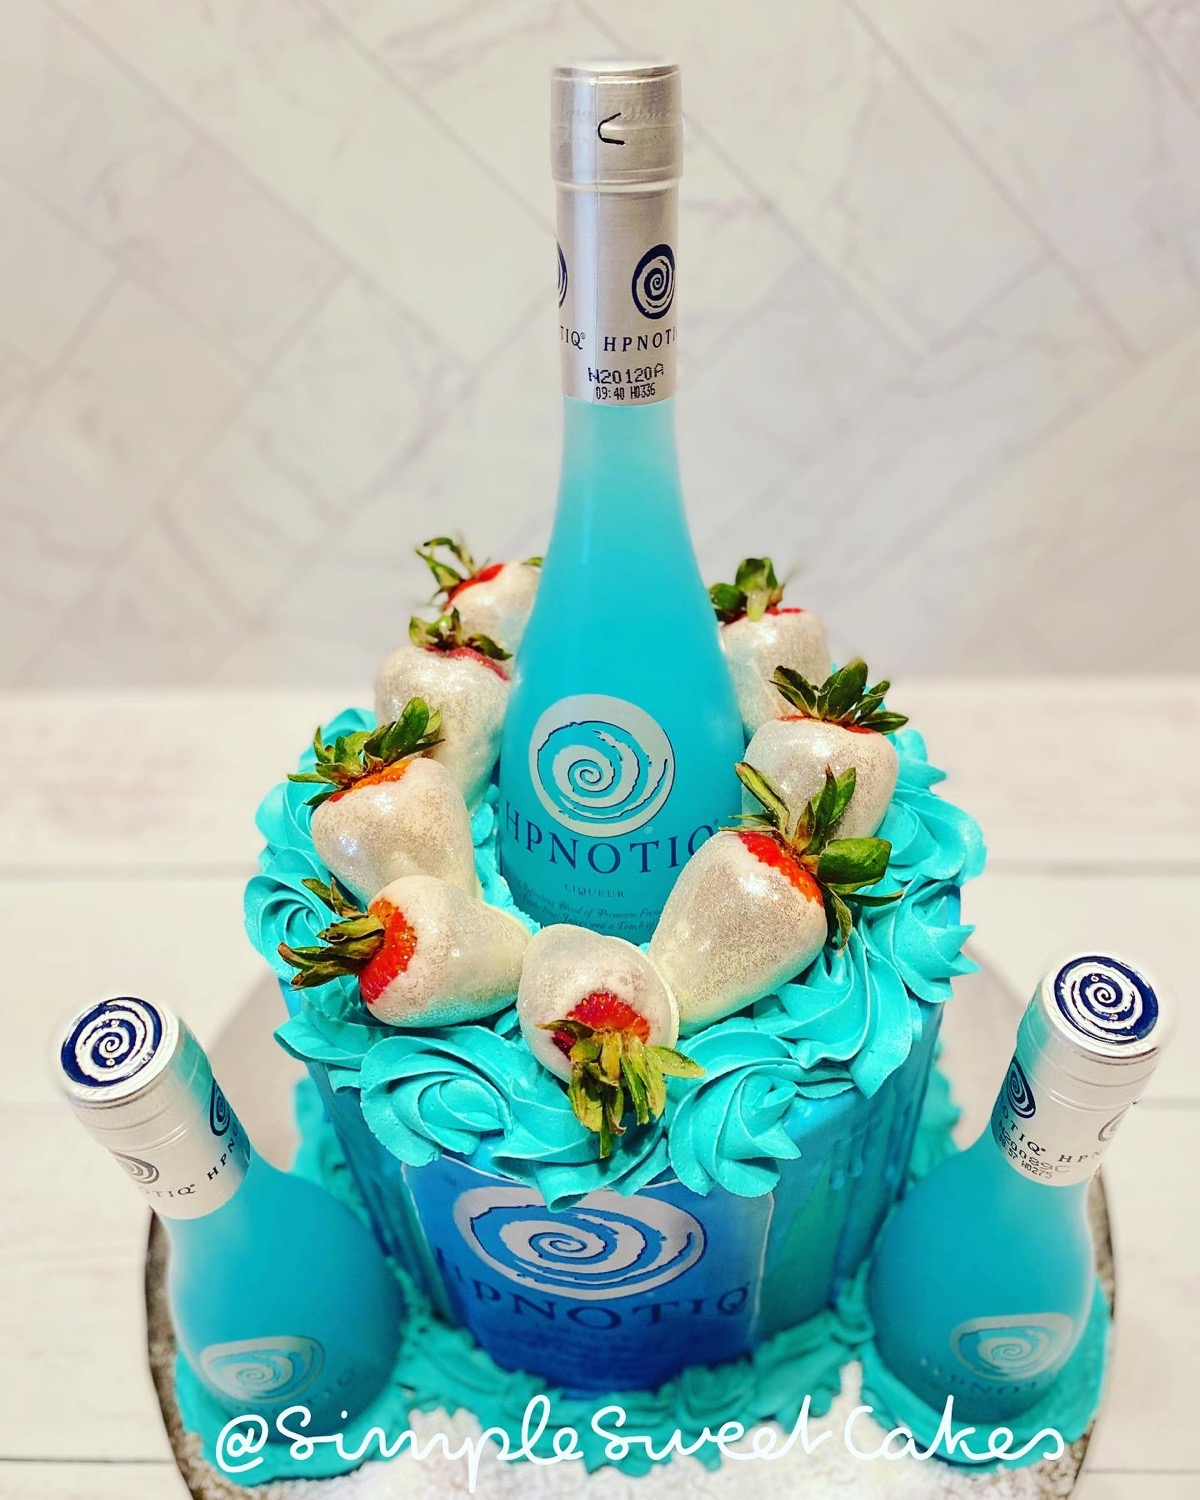 View from the Top - Hpnotiq Cake